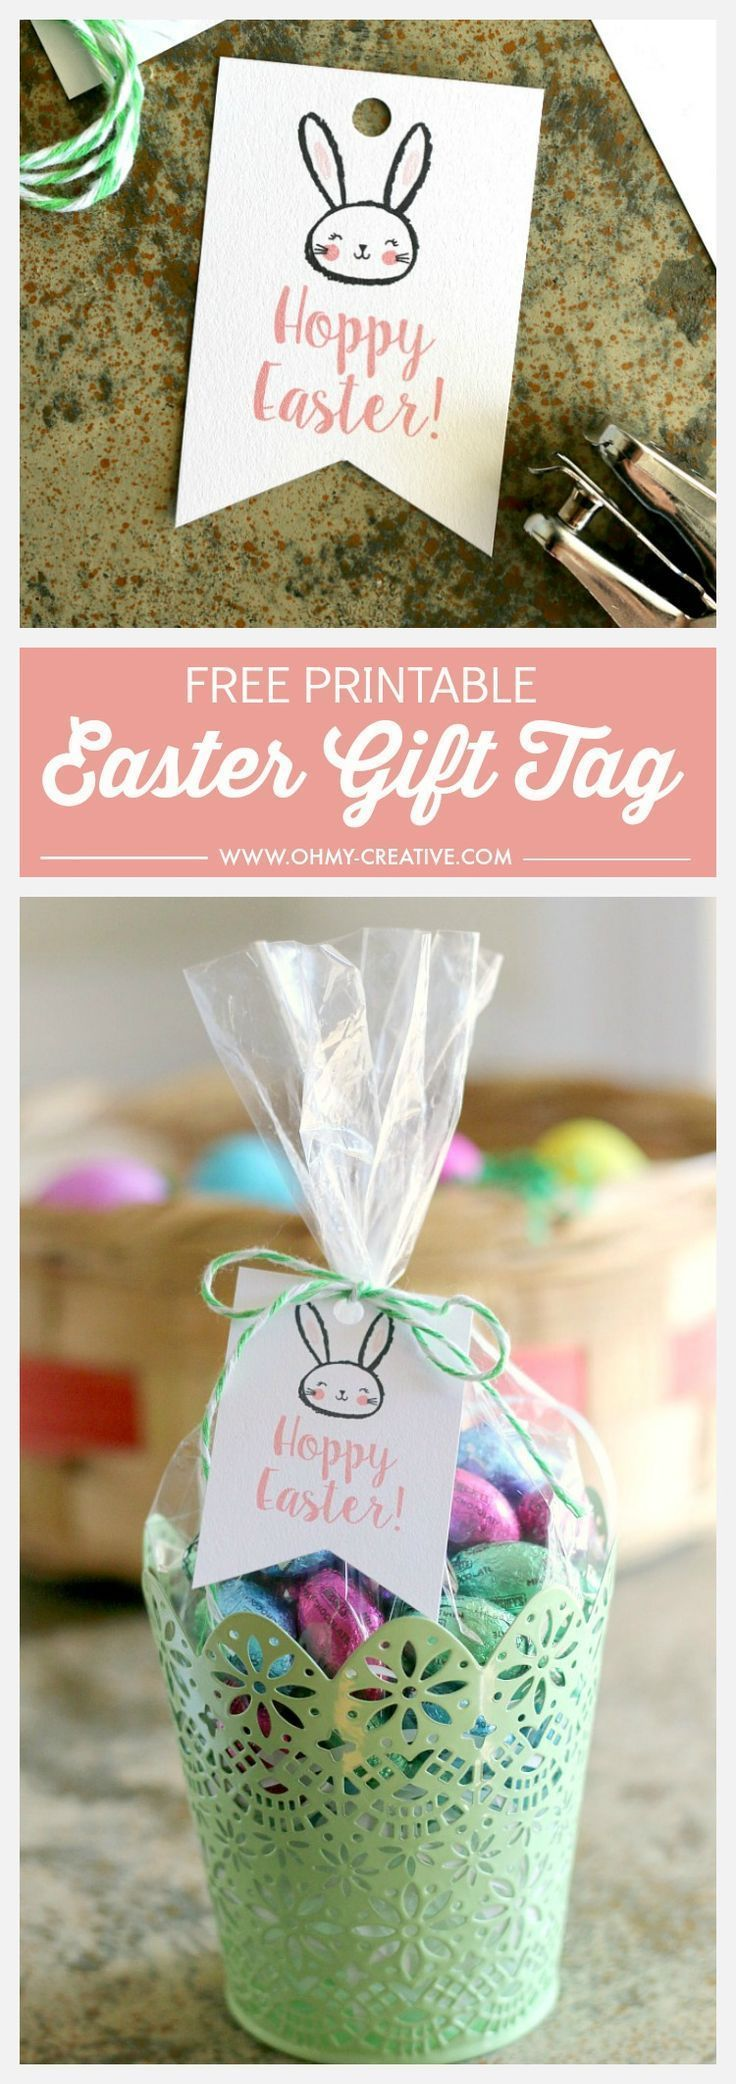 Free printable hoppy easter gift tags classroom treats hoppy free printable hoppy easter gift tags ohmy creative easter printable negle Image collections